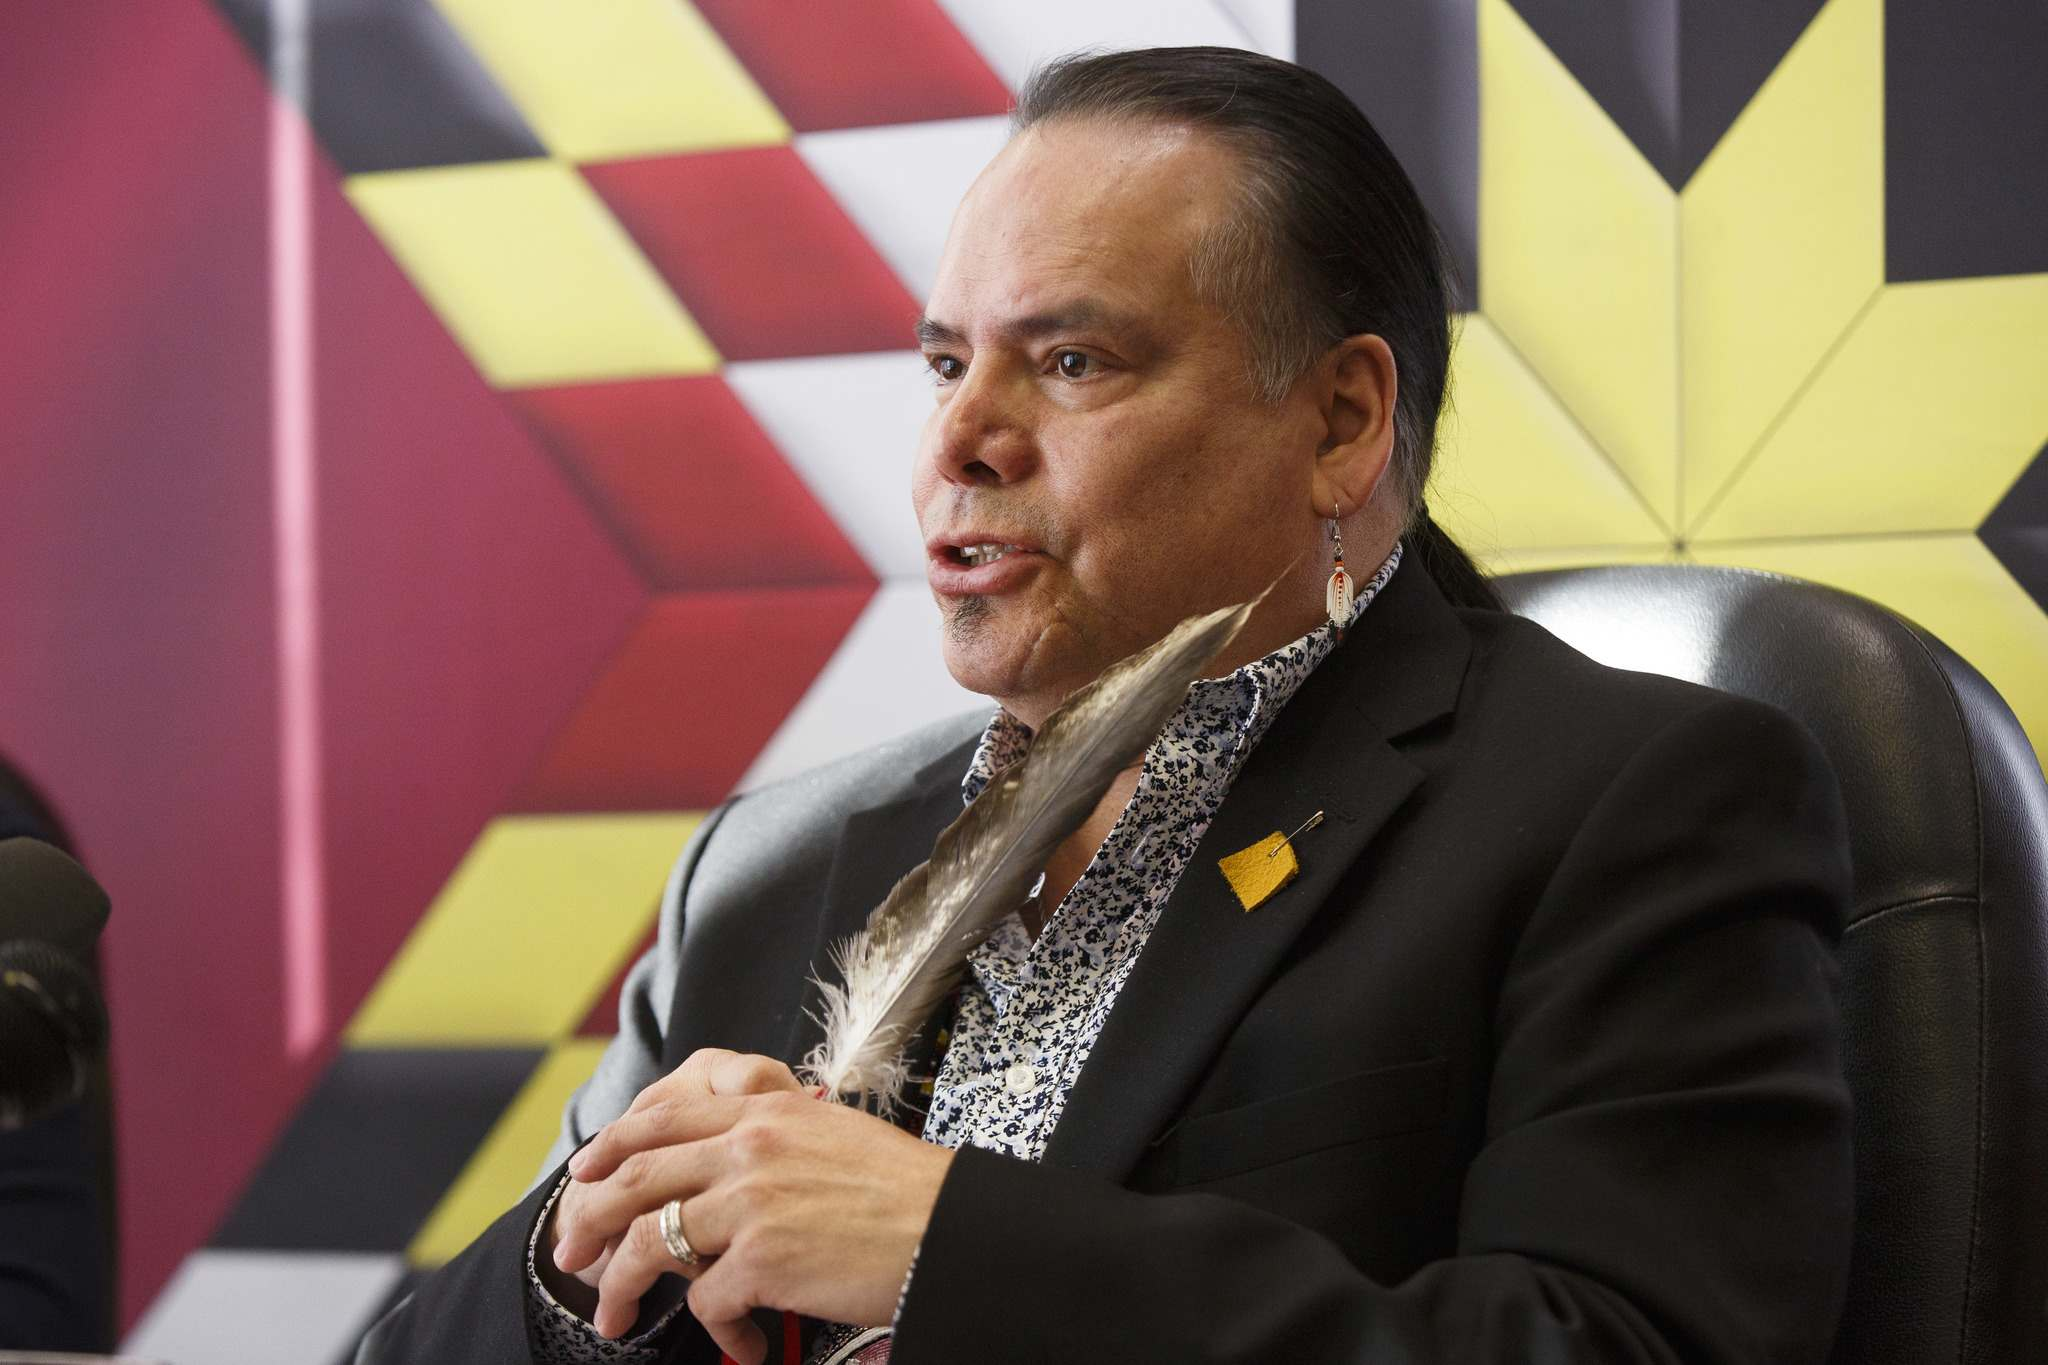 """MIKE DEAL / FREE PRESS FILES</p><p>""""I want to commend Chief Eric Redhead for his diligent advocacy for the residents of Shamattawa. Last week he asked for help from the Canadian military and he did not stop asking for this assistance,"""" said Manitoba Keewatinowi Okimakanak's Grand Chief Garrison Settee.</p>"""